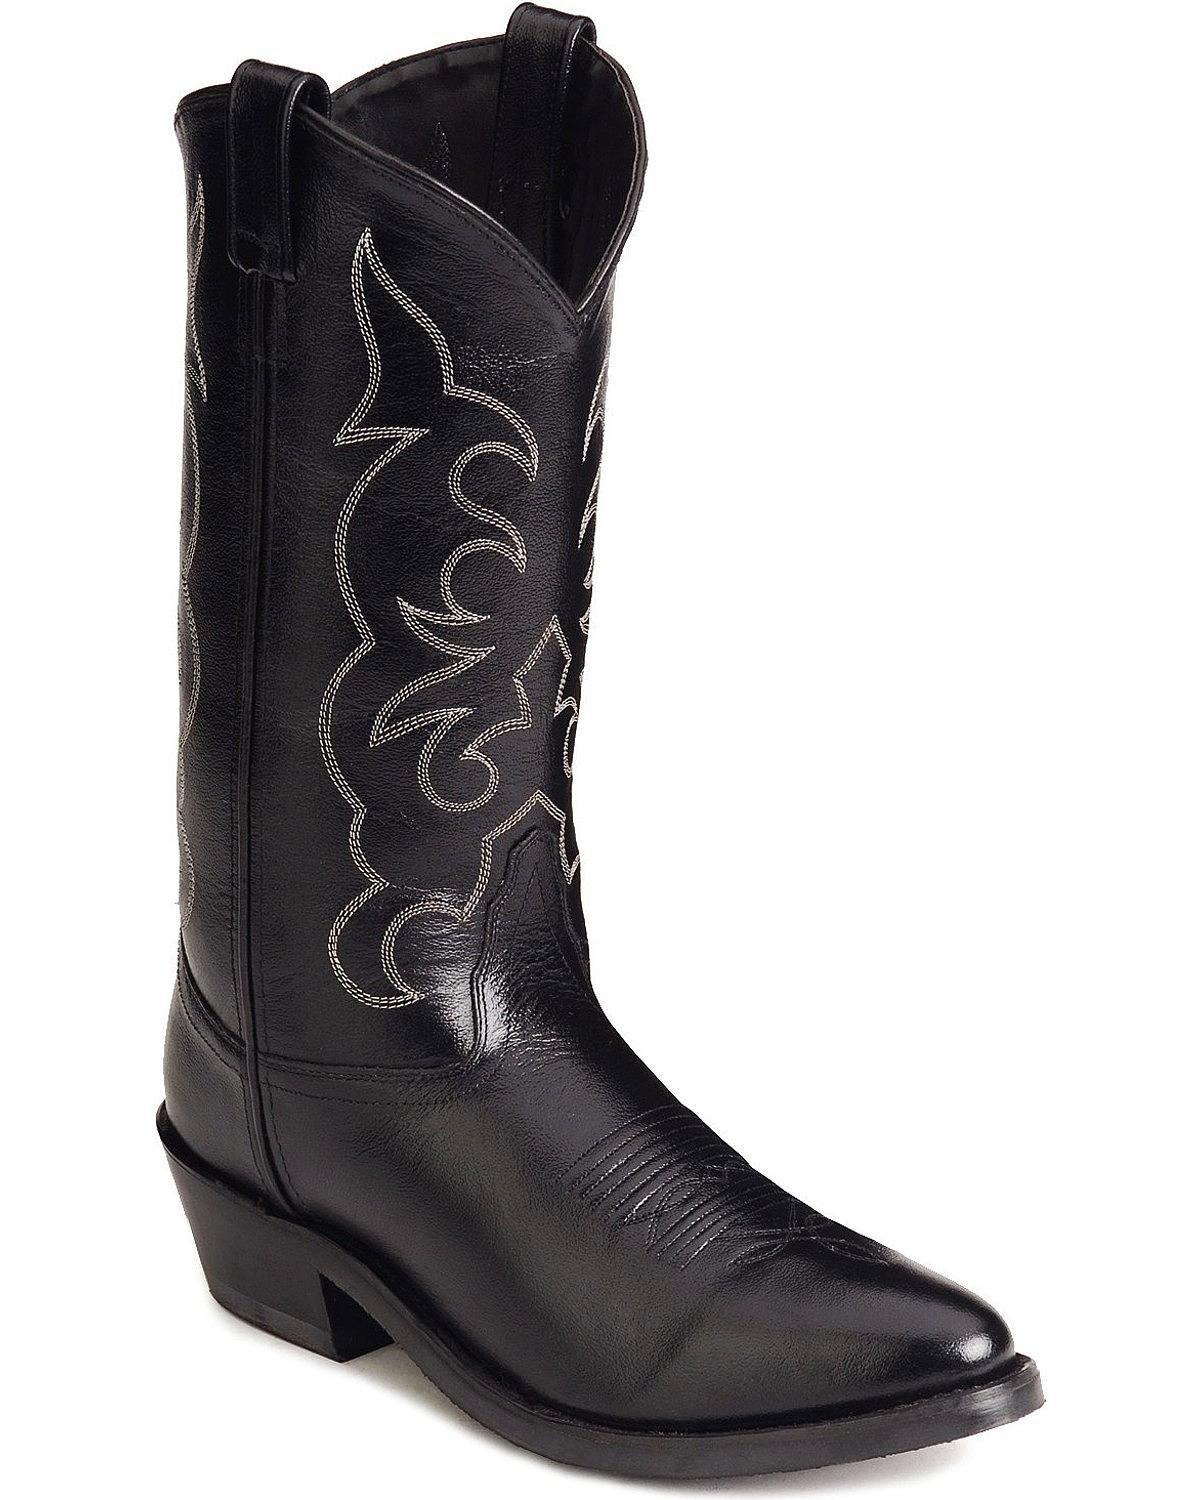 Old West Men's Leather Cowboy Work Boots - Black10 2E US by Old West Boots